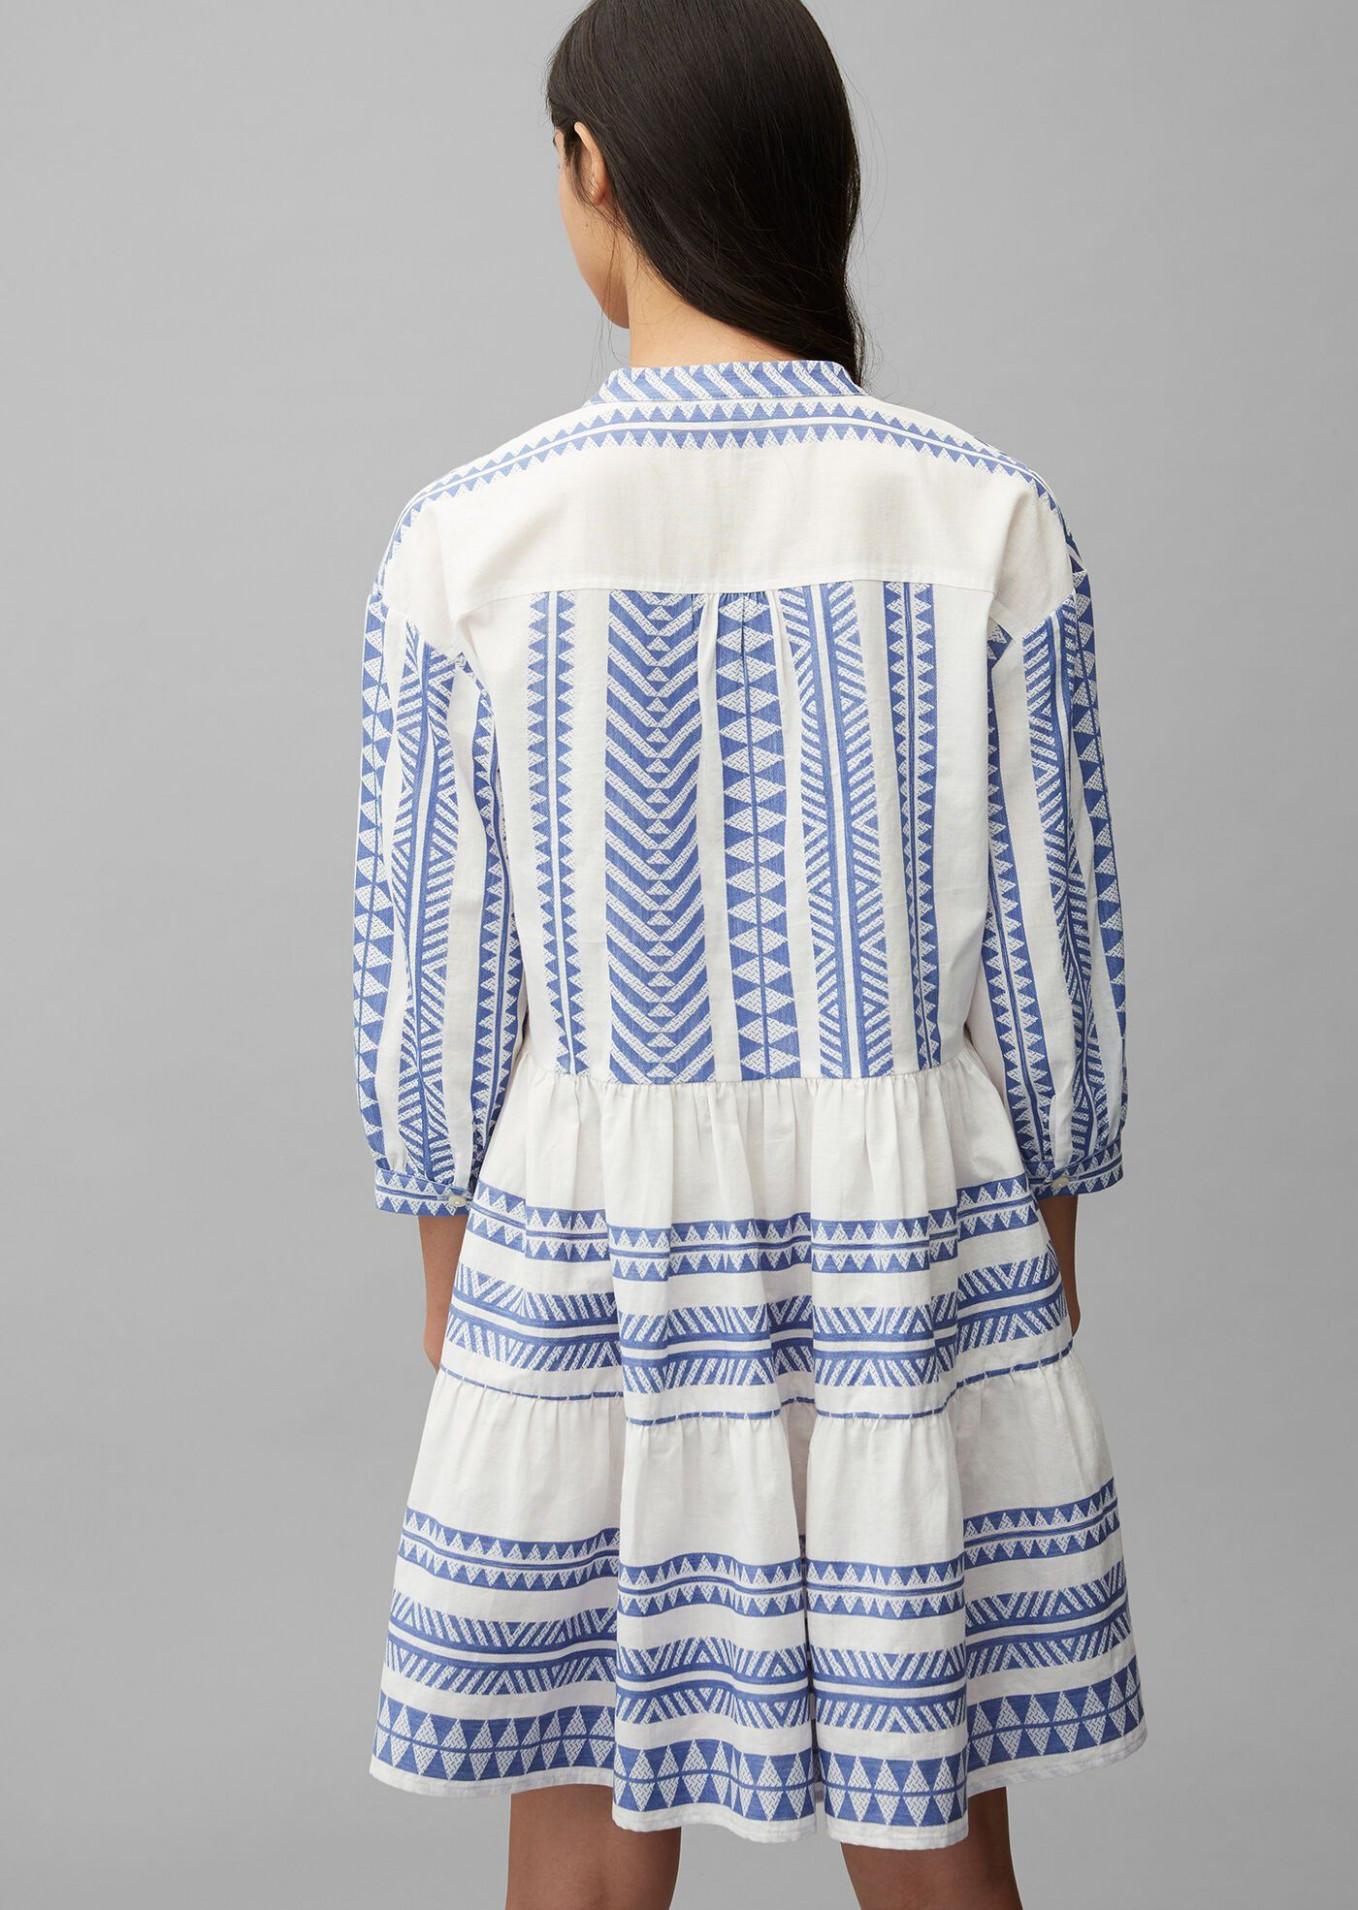 marco polo kleider online shop dresses with sleeves, long sleeve marco polo kleider